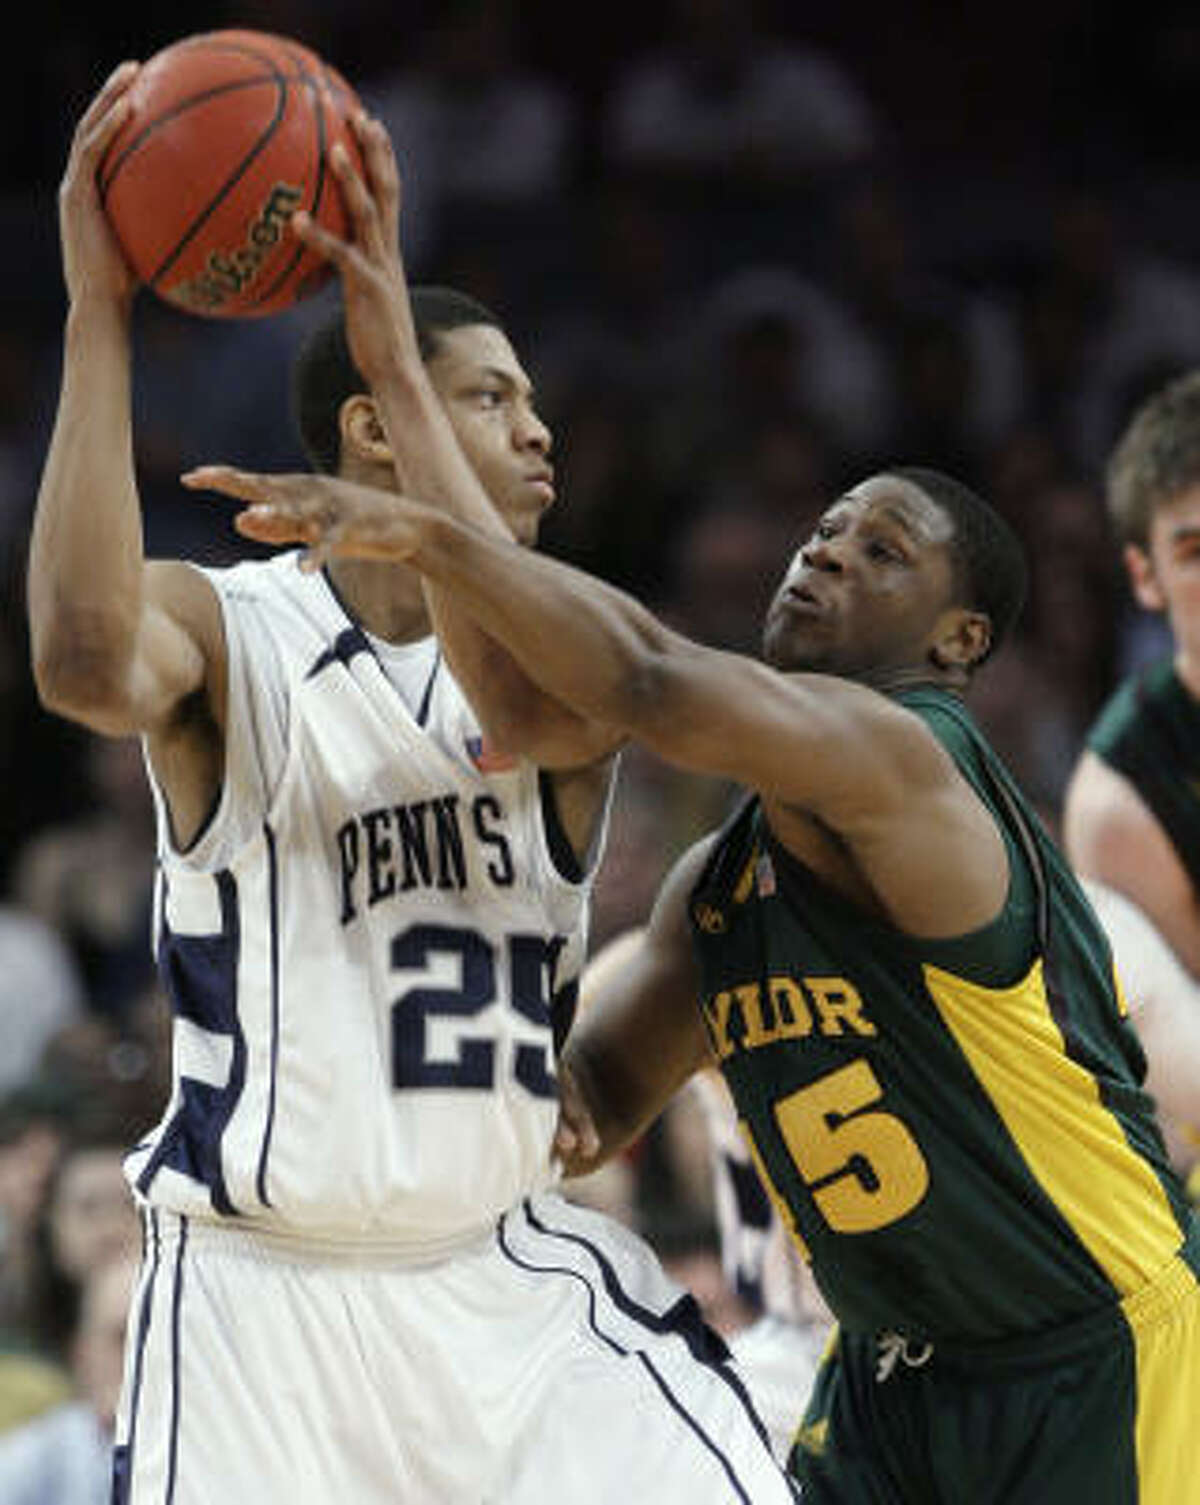 Baylor's Darren Kent, right, defends Penn State's Jeff Brooks during the first half of Thursday's NIT championship game in New York. Penn State won 69-63.